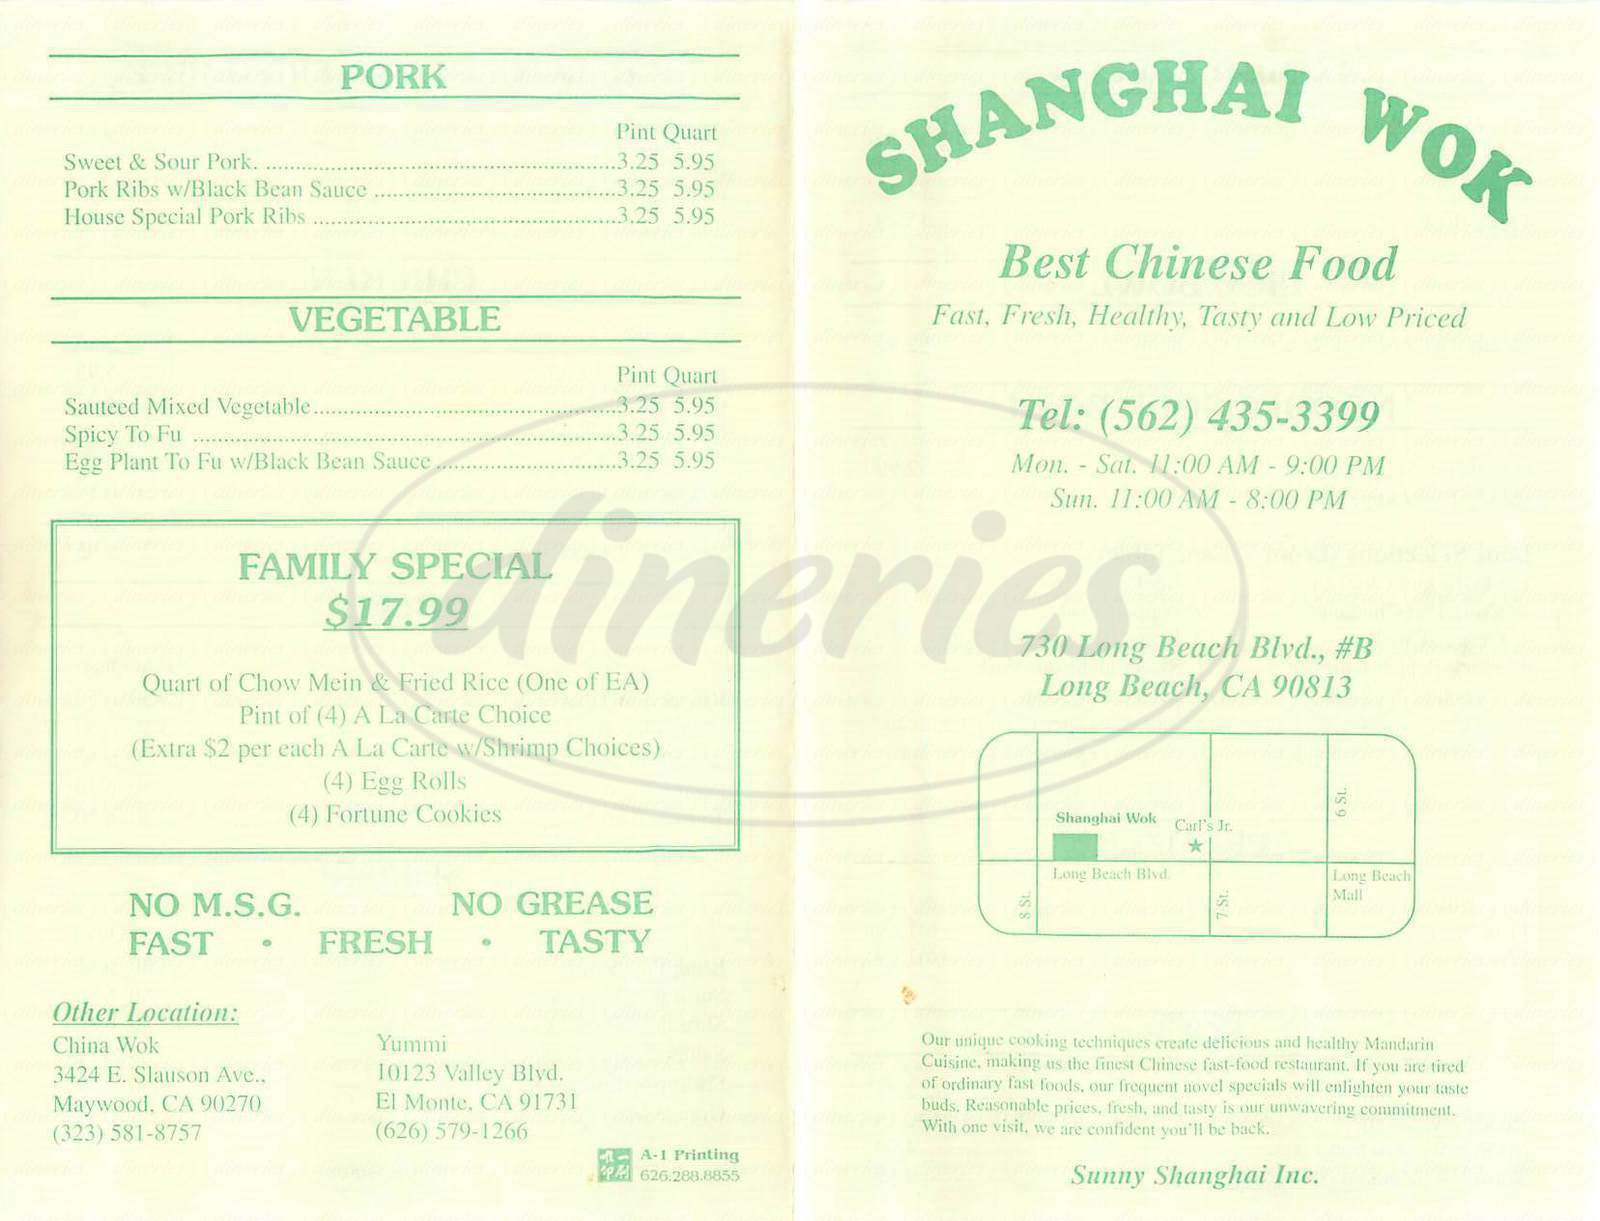 menu for Shangahi Wok